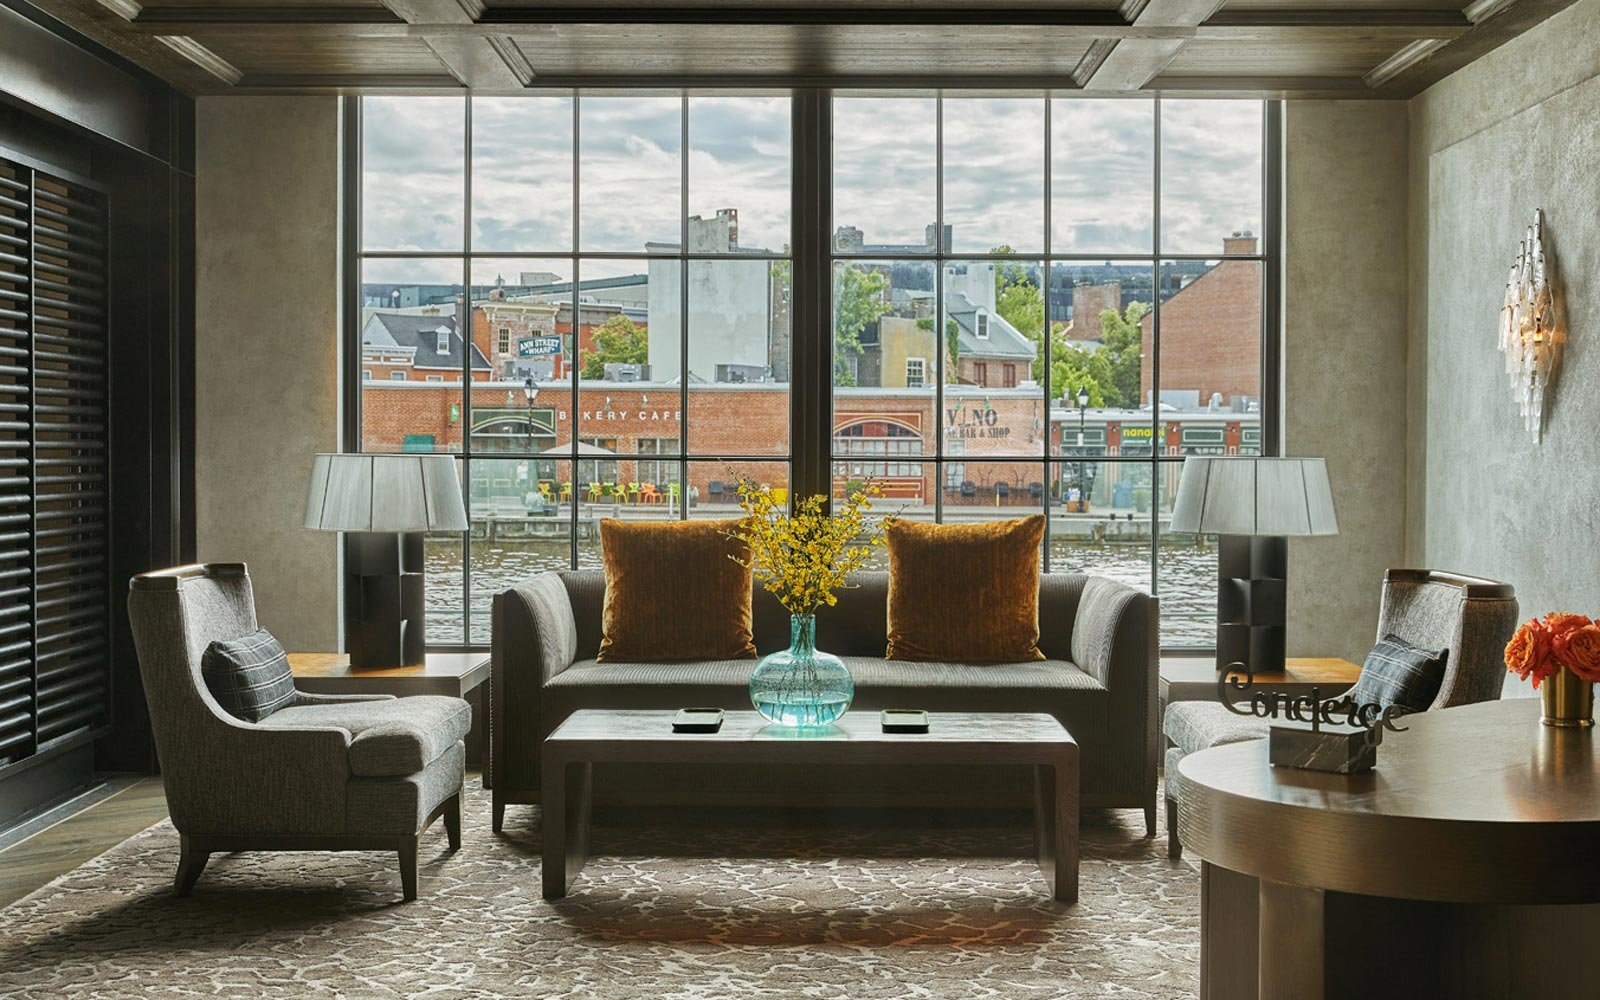 View from the Sagamore Pendry hotel in Baltimore, Maryland